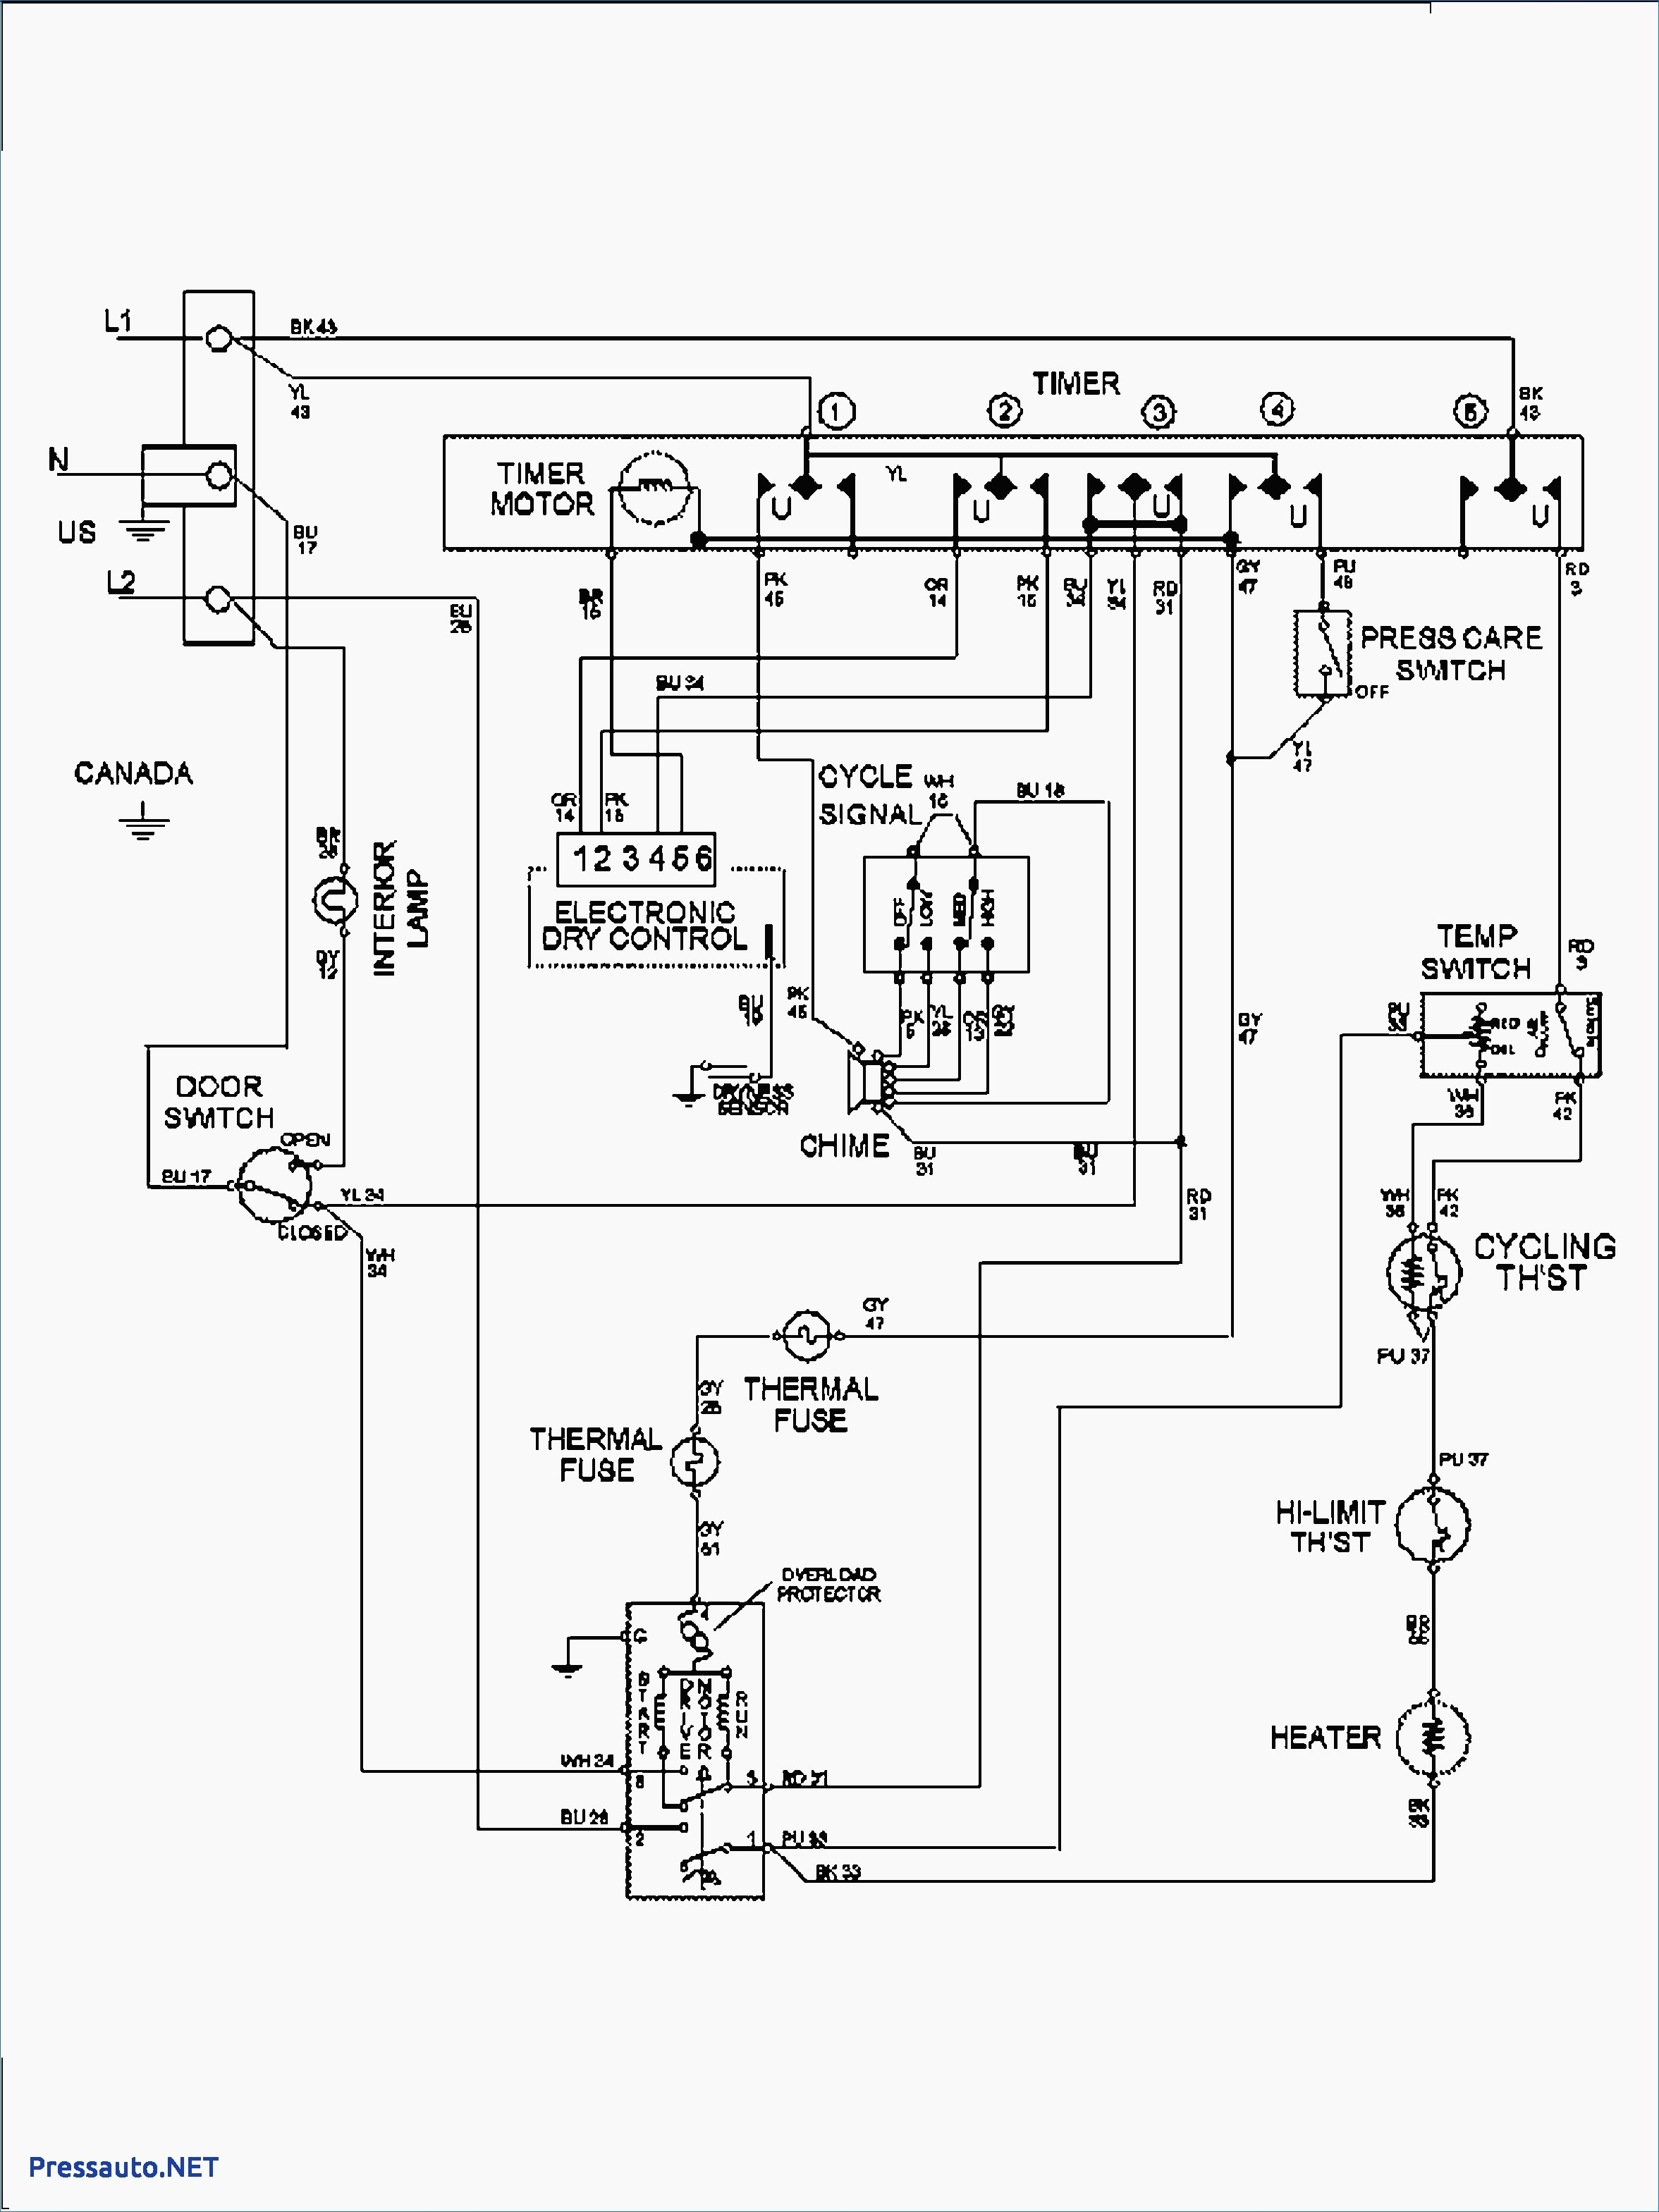 Electrical Wiring Appliance Maytag Atlantis Dryer Question About Unusual Wire Diagram